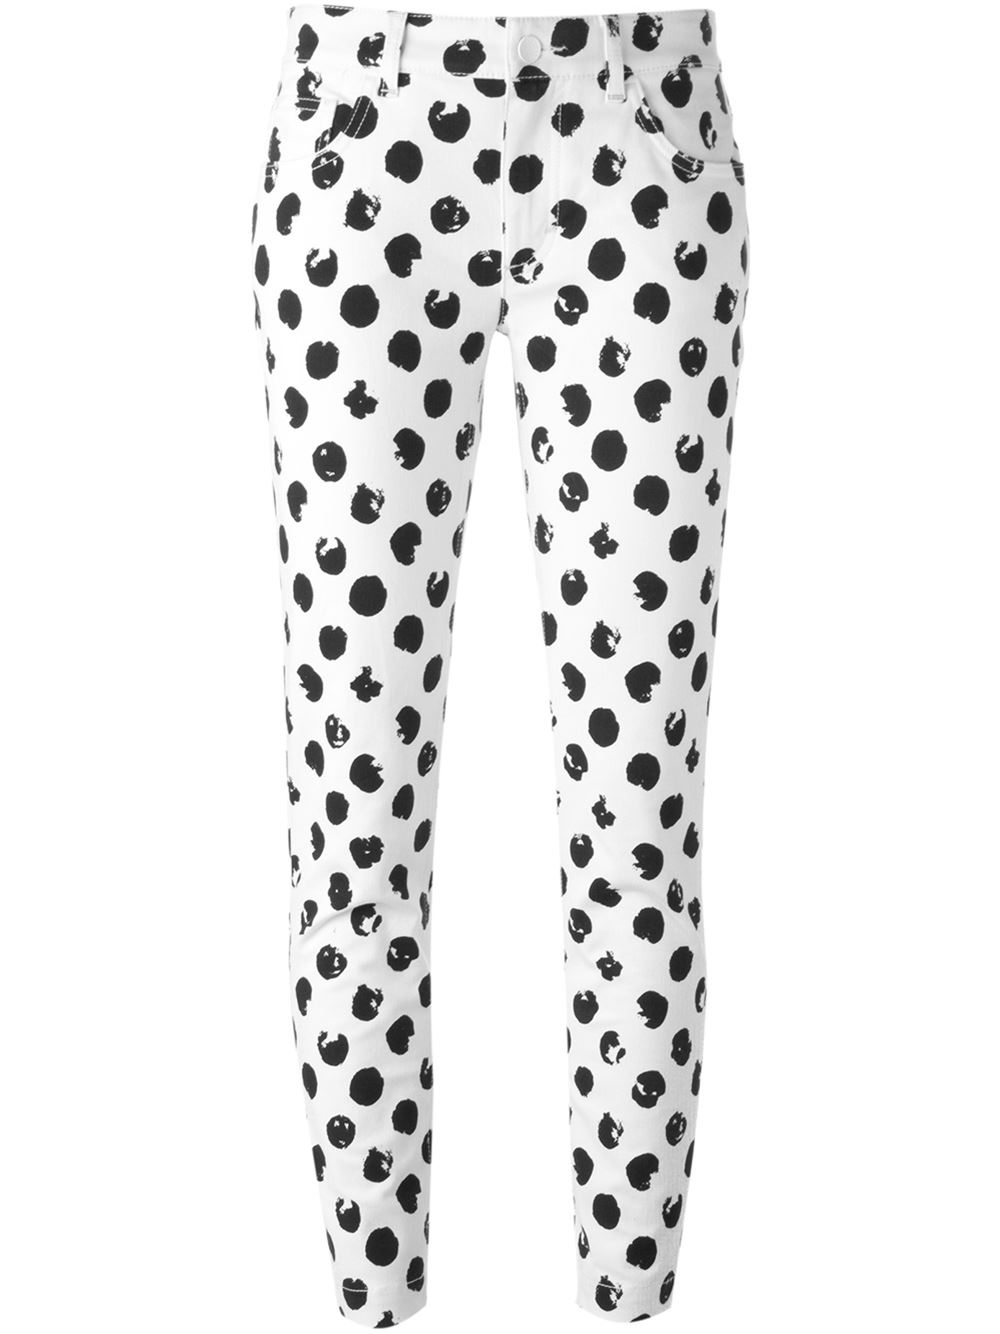 russia-youtube.tk: black and white polka dot pants. From The Community. Amazon Try Prime All jeans cute jeans for women white yoga pants 3t jeans 5 jeans for 20 CONCITOR Collection Men's Dress Pants POLKA DOT Design WHITE Color Black Dots. by Concitor. $ $ 34 4 out of 5 stars 3.